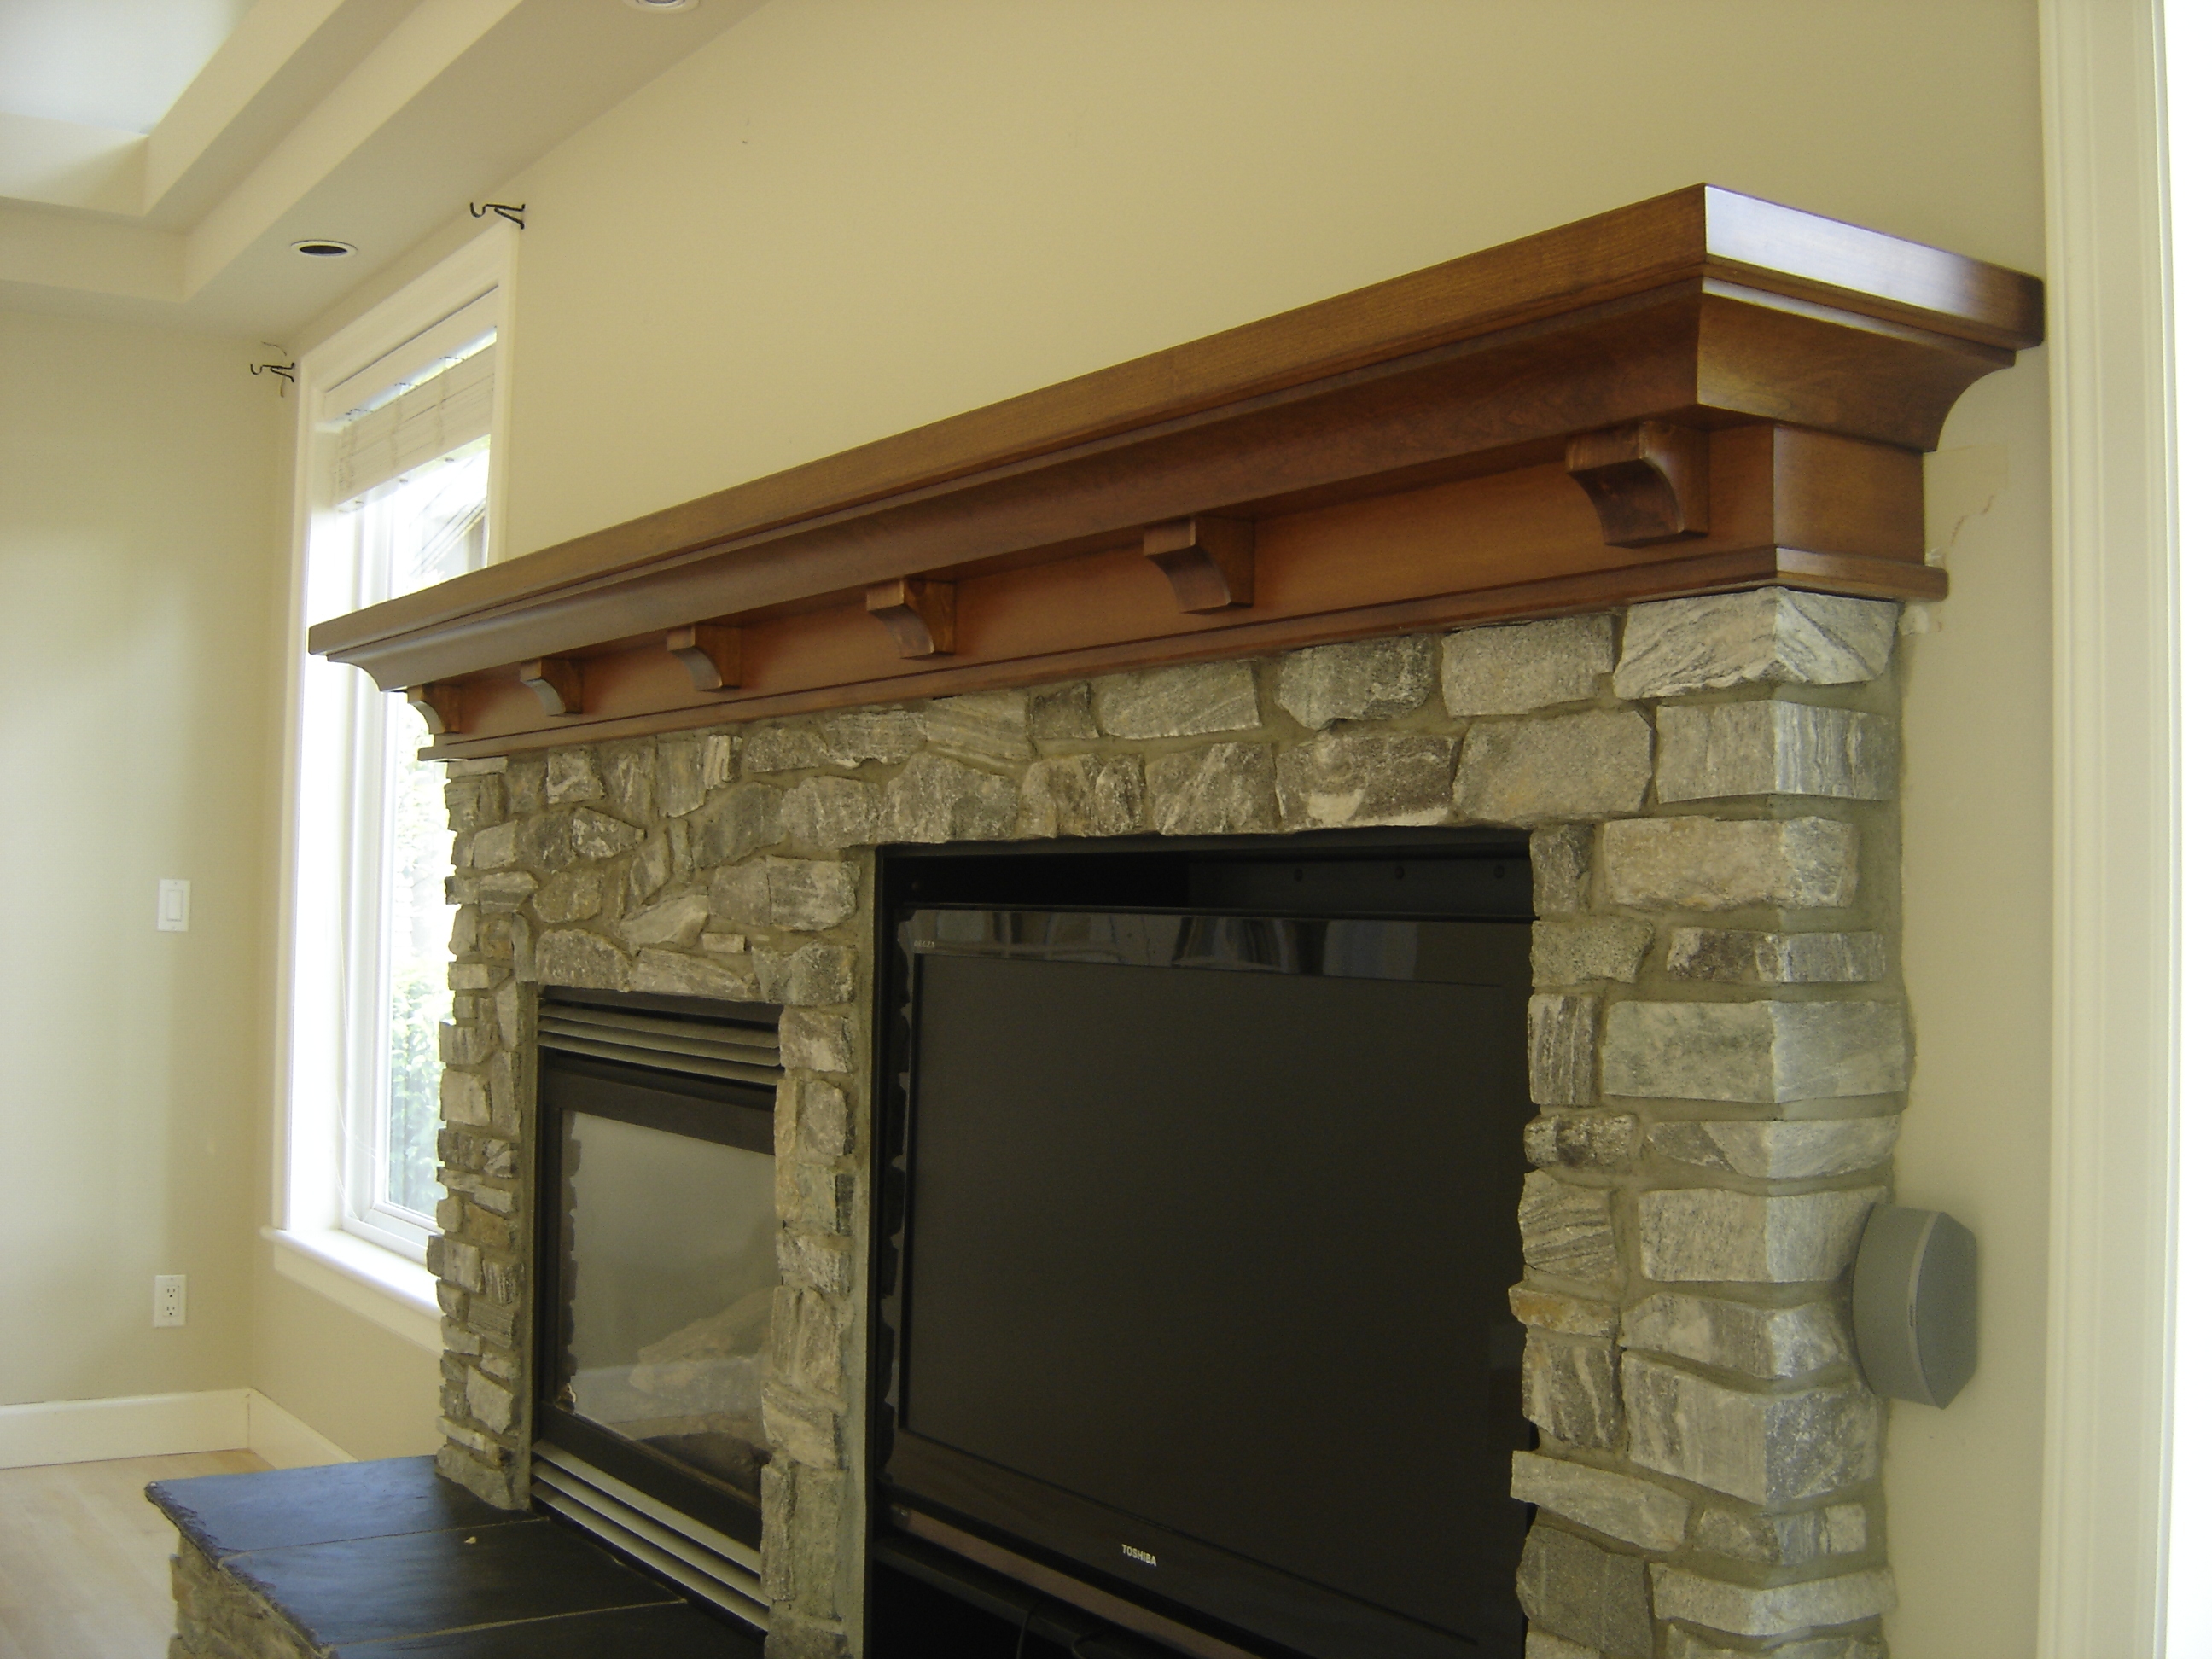 Awesome Hazelmere Mantel Fireplaces Fireplace Mantels Mantel Home Interior And Landscaping Ologienasavecom